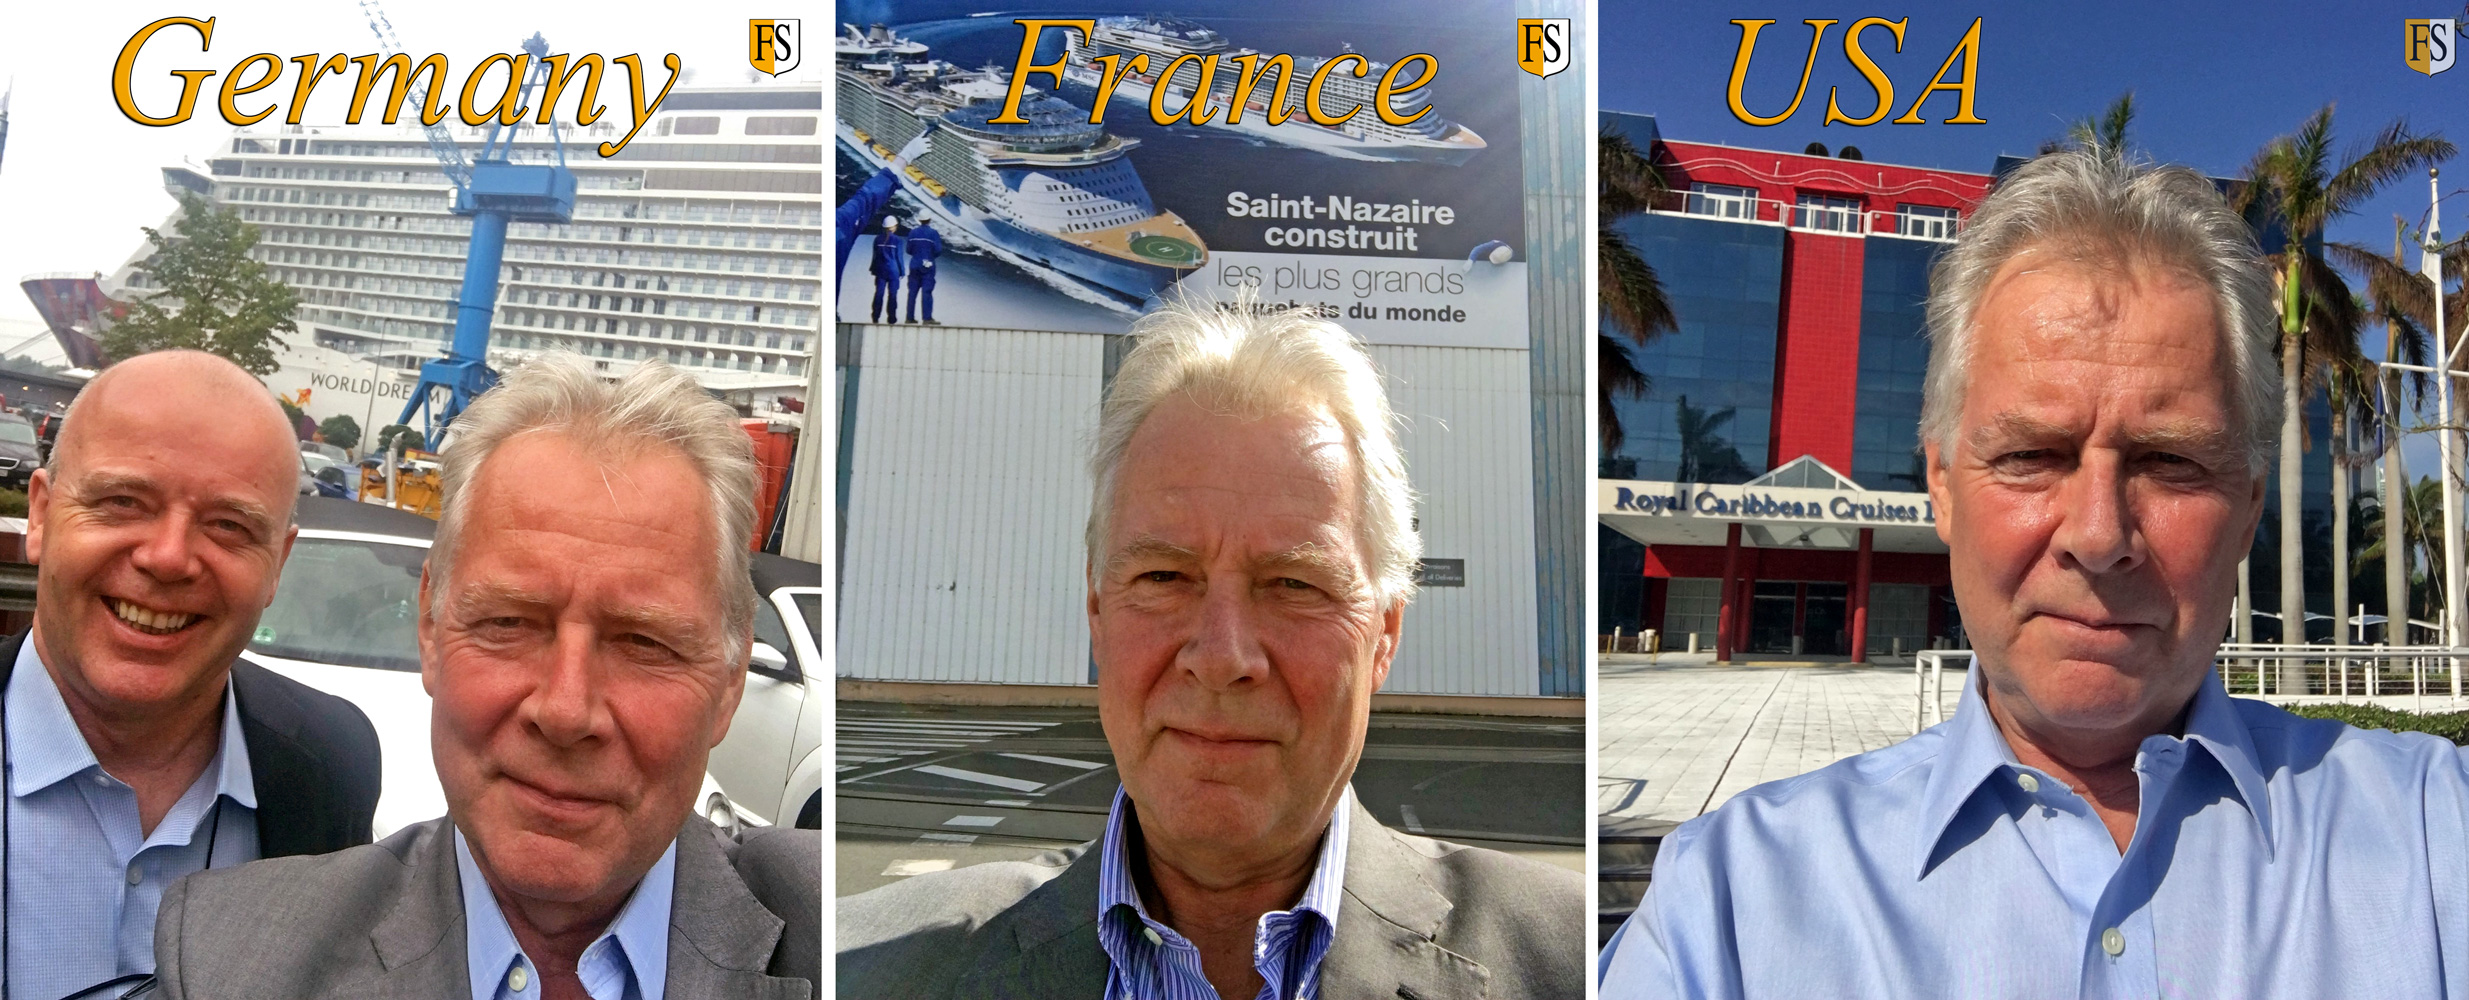 Fire Security discussing new projects in Germany-France-USA